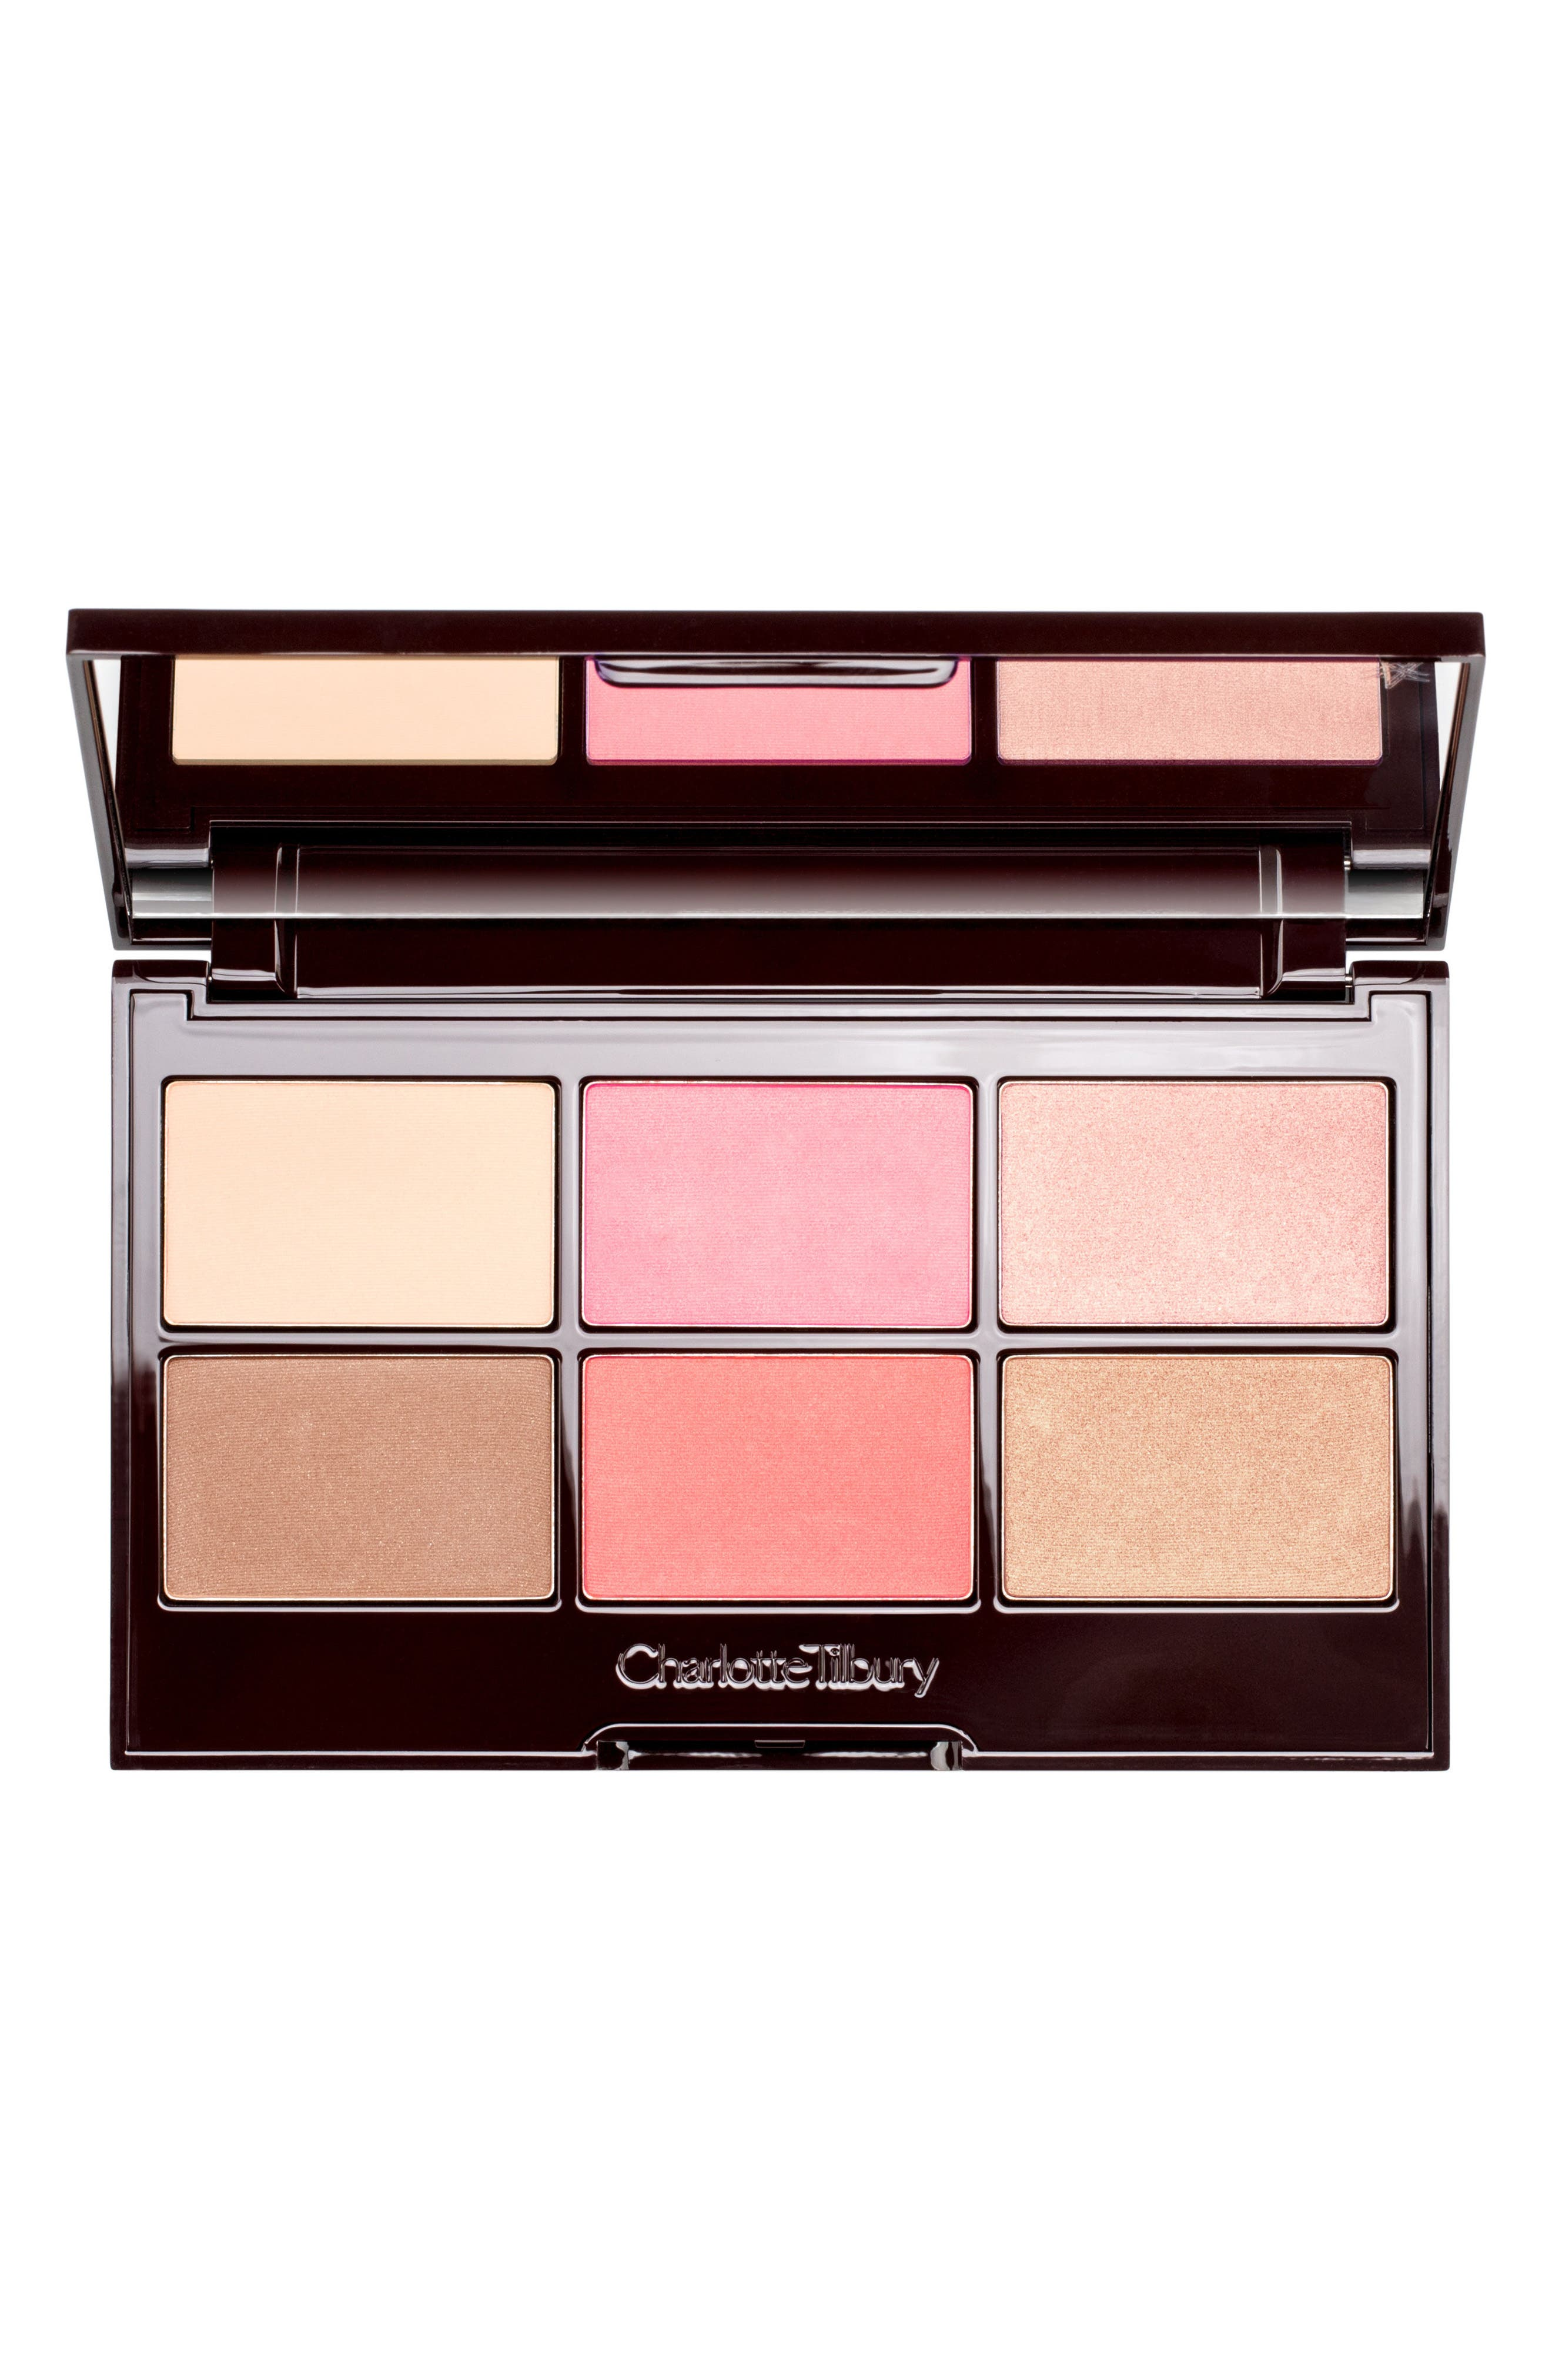 Pretty Glowing Skin Palette,                             Main thumbnail 1, color,                             NO COLOR